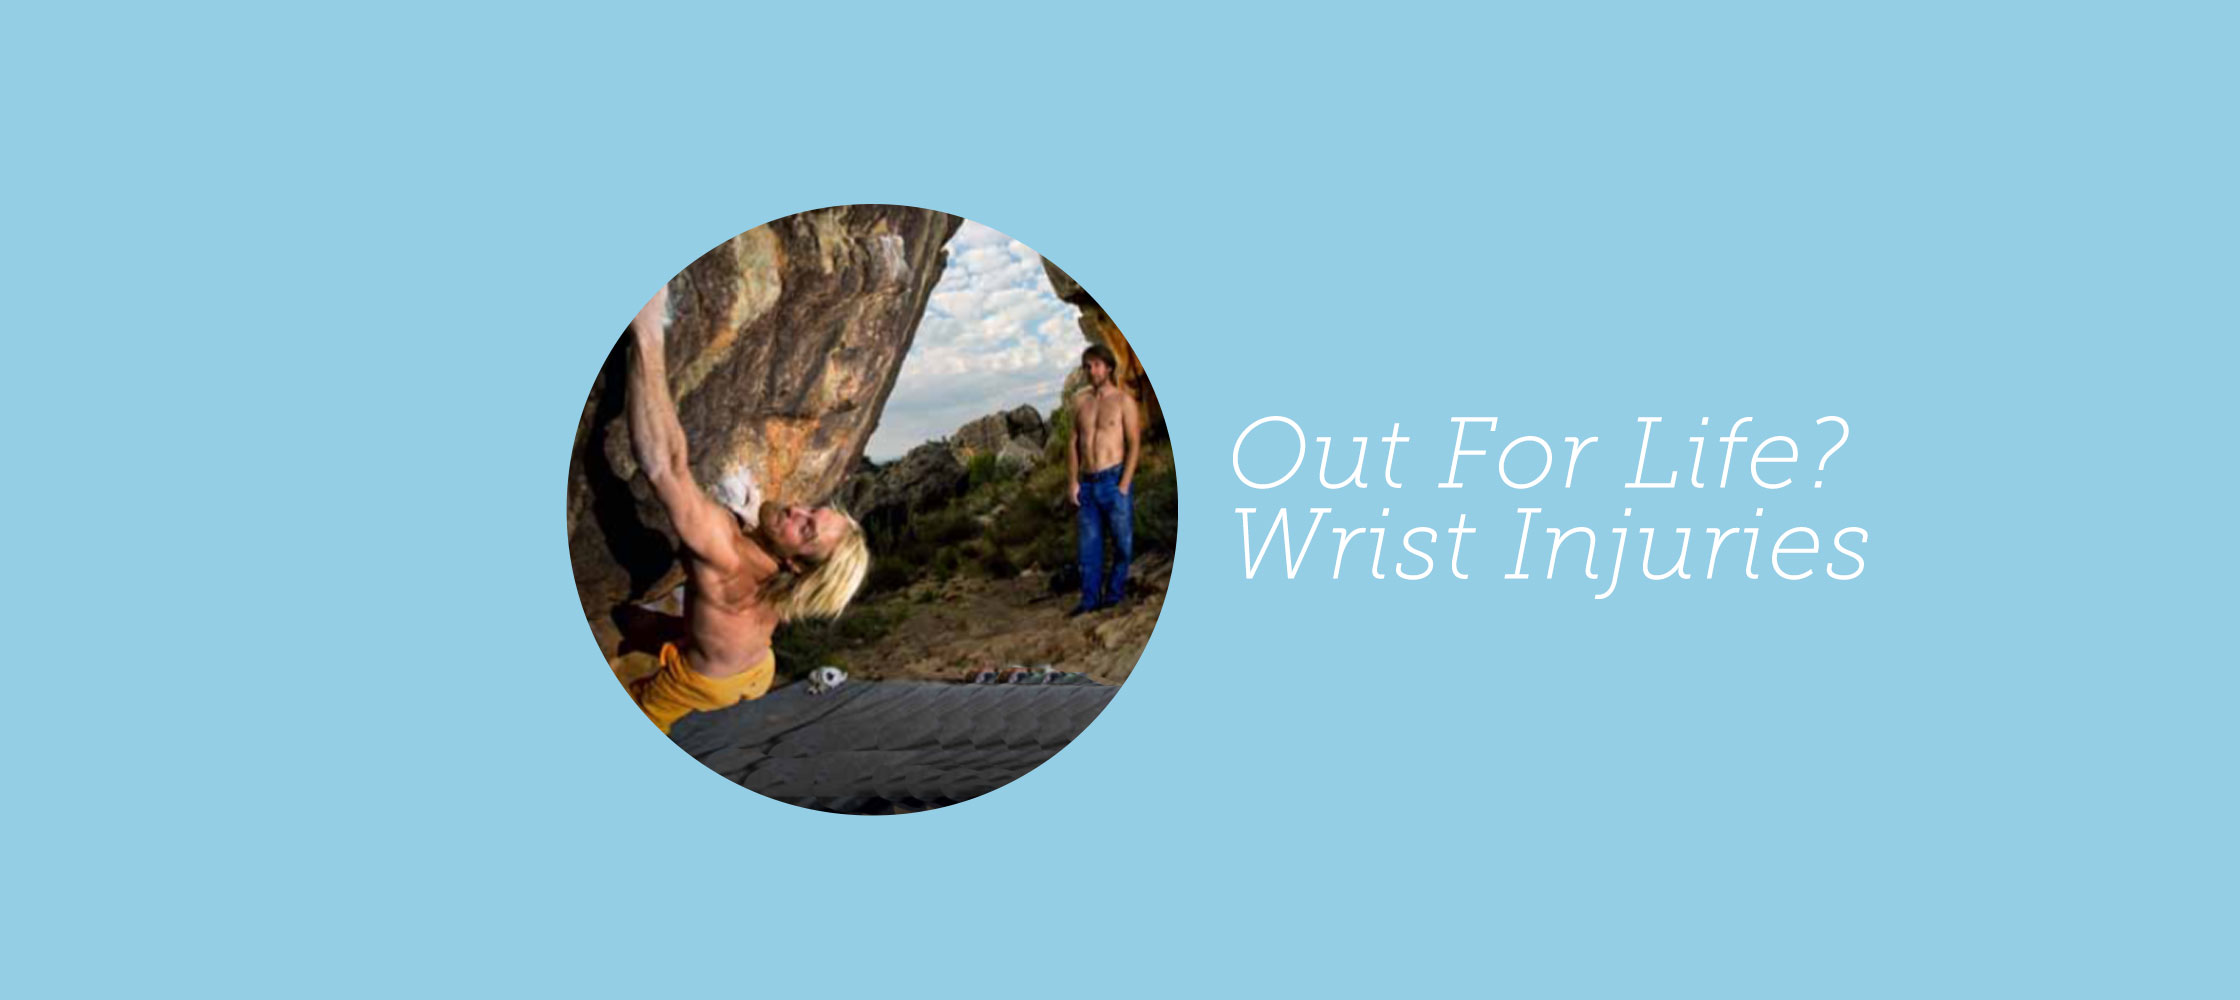 196-out-for-life-wrist-injuries